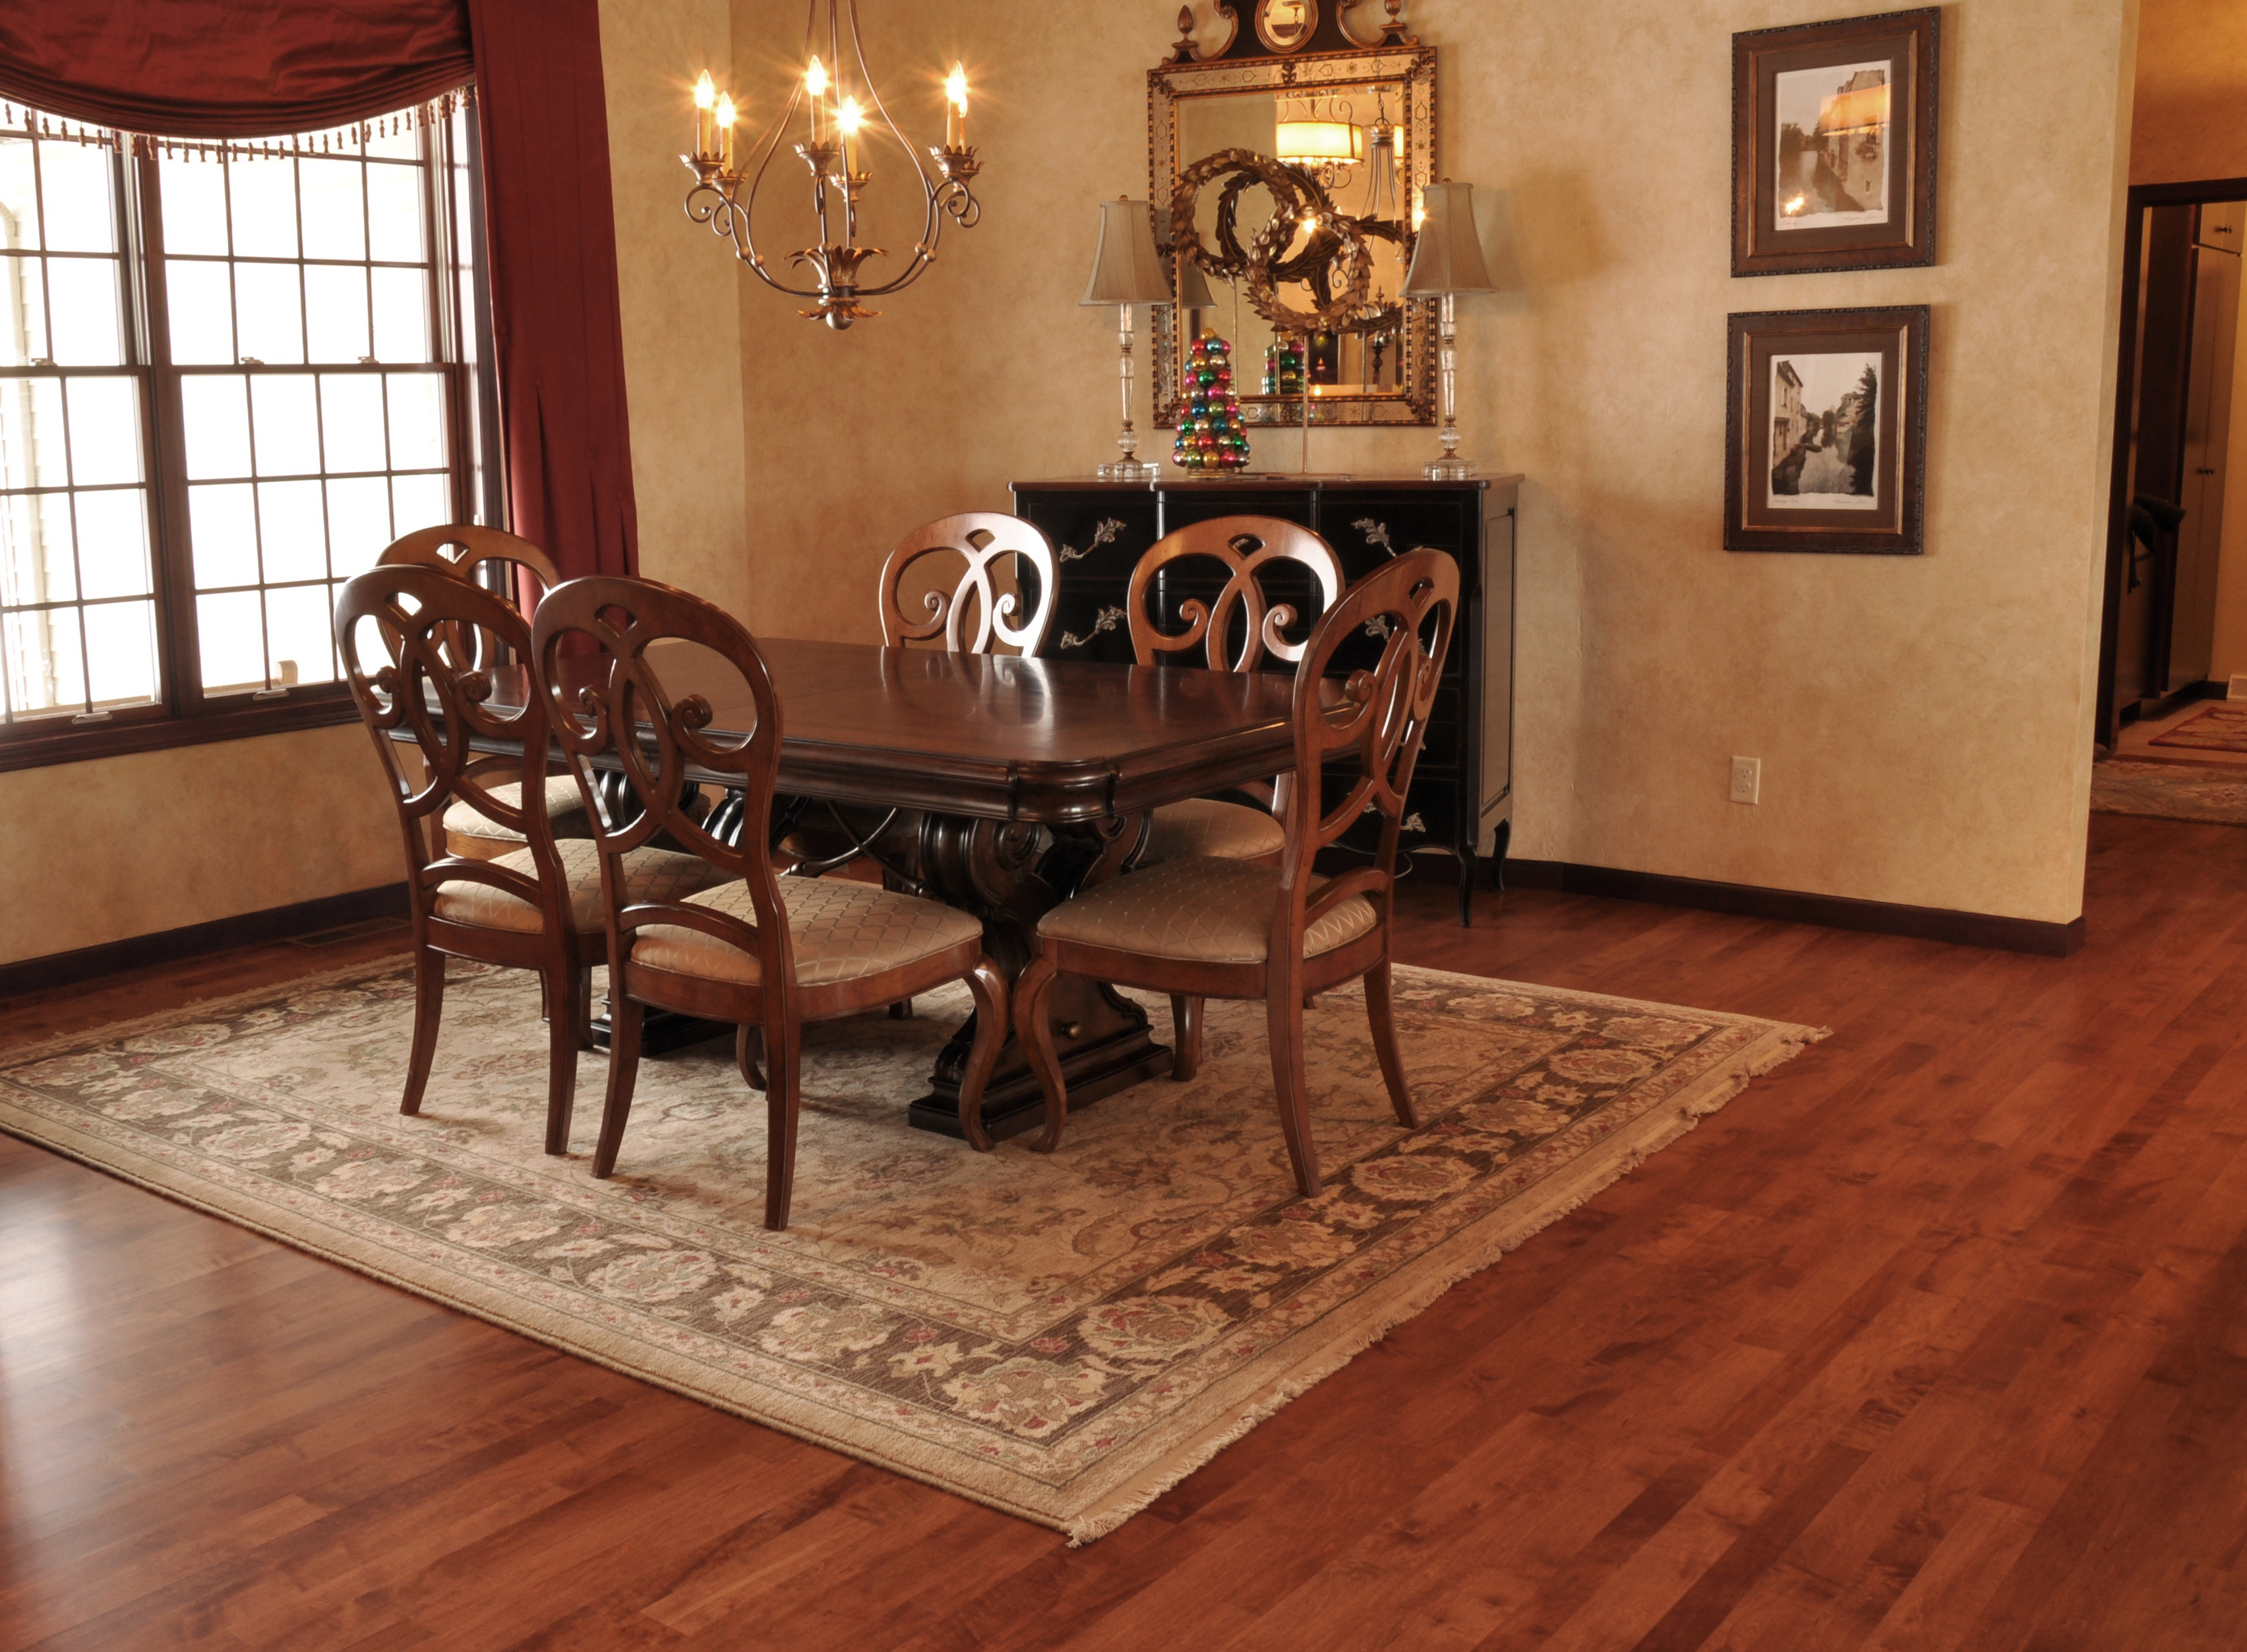 5 Tips For Using Rugs On Hardwood Floors